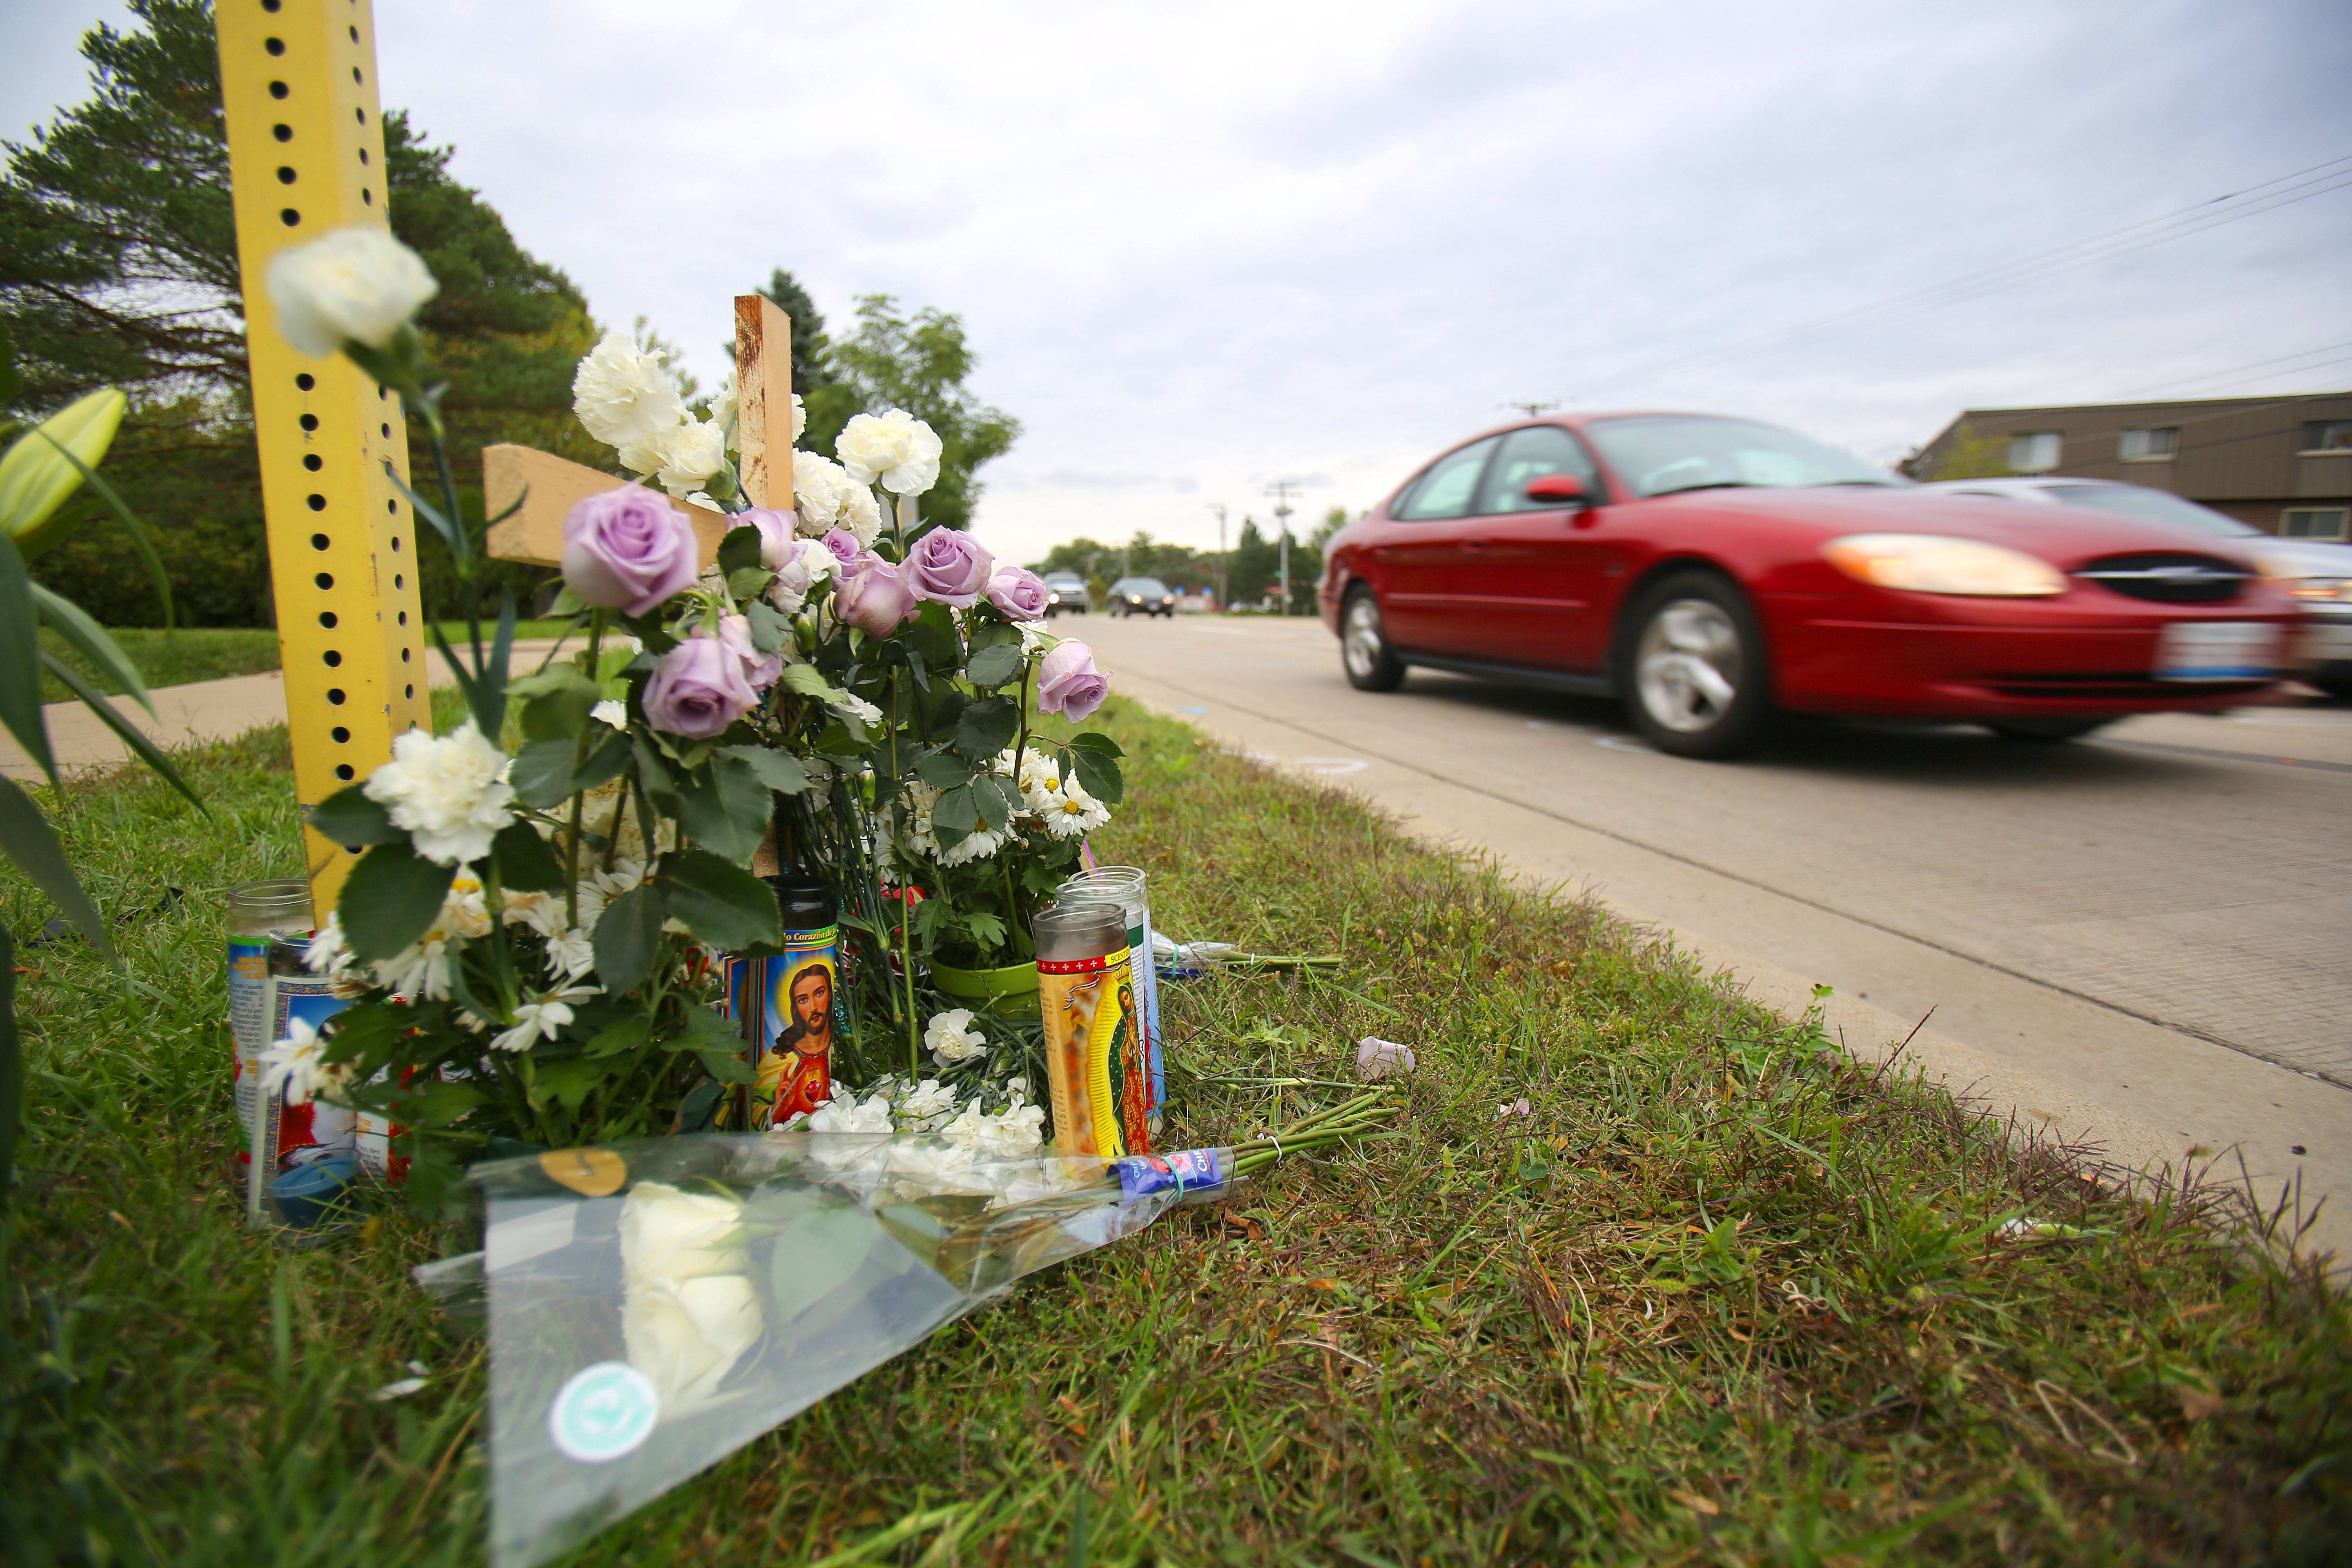 A memorial sits on McHenry Road in Wheeling for Fredi Morales, the Des Plaines man killed early Sunday when struck by a Wheeling police vehicle. The 22-year police veteran driving the vehicle was pursuing a suspected traffic violator when he struck Morales, police said Monday.